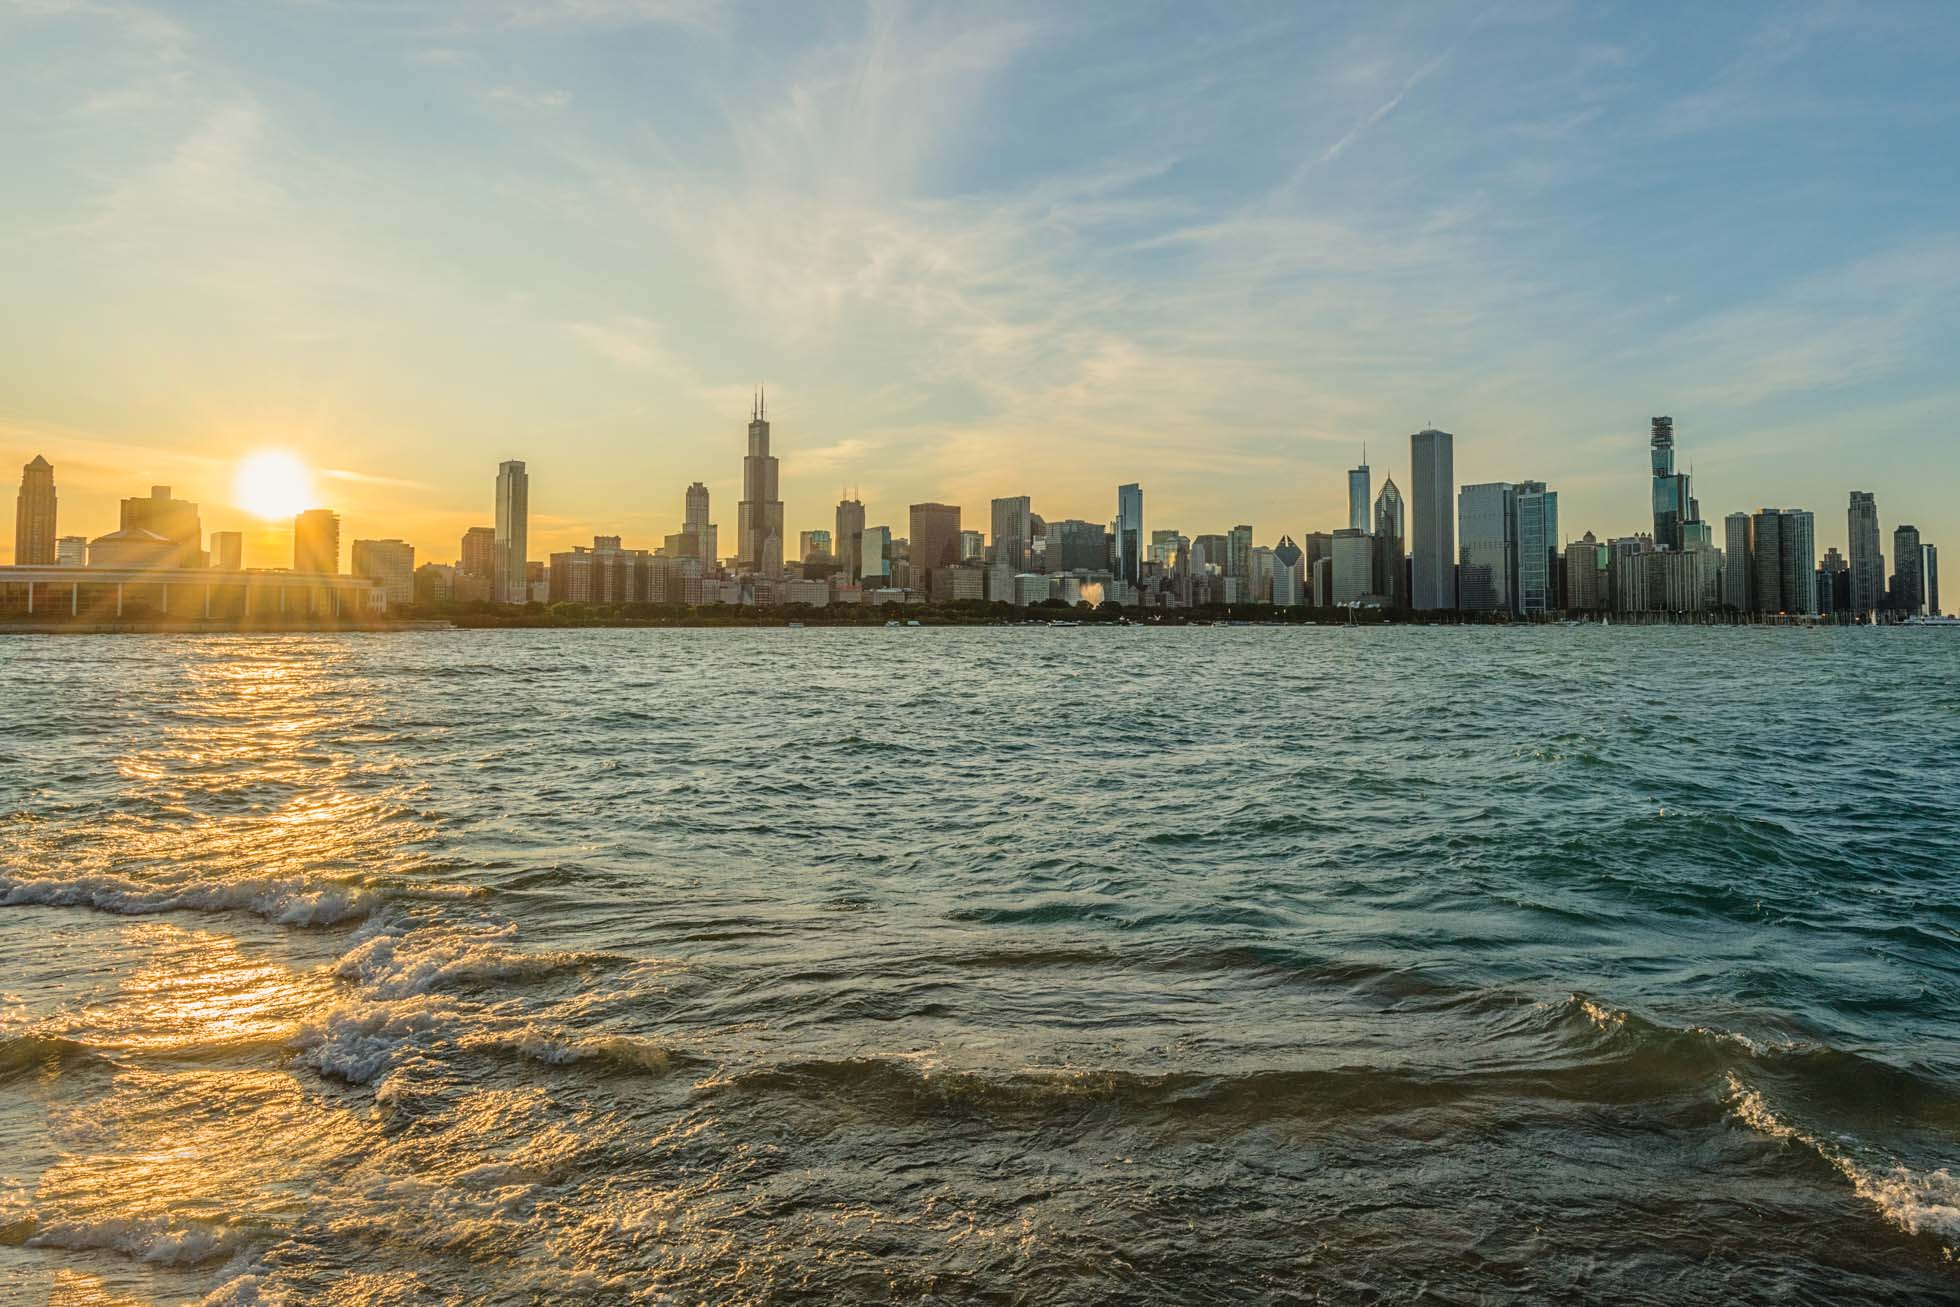 Chicago Skyline on a windy and wavy day. Captured with a 1/320 shutter speed.